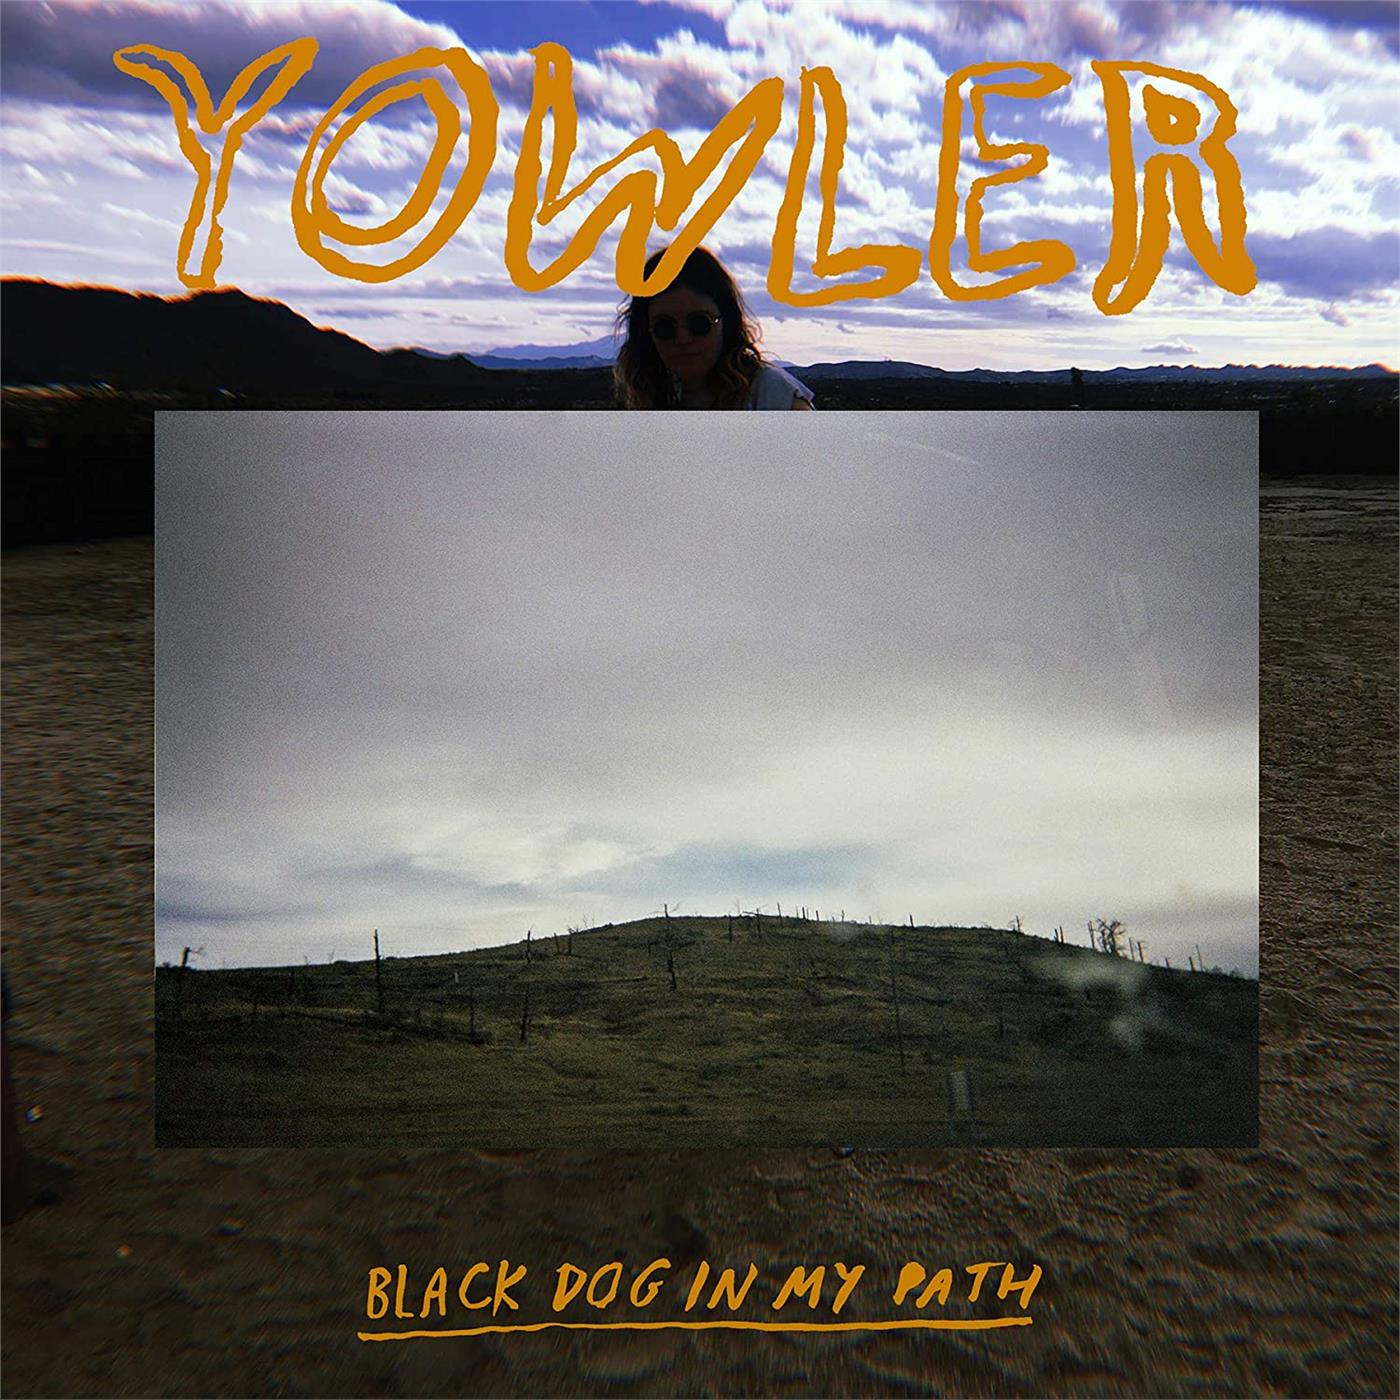 Yowler - Black Dog In My Path [LP]